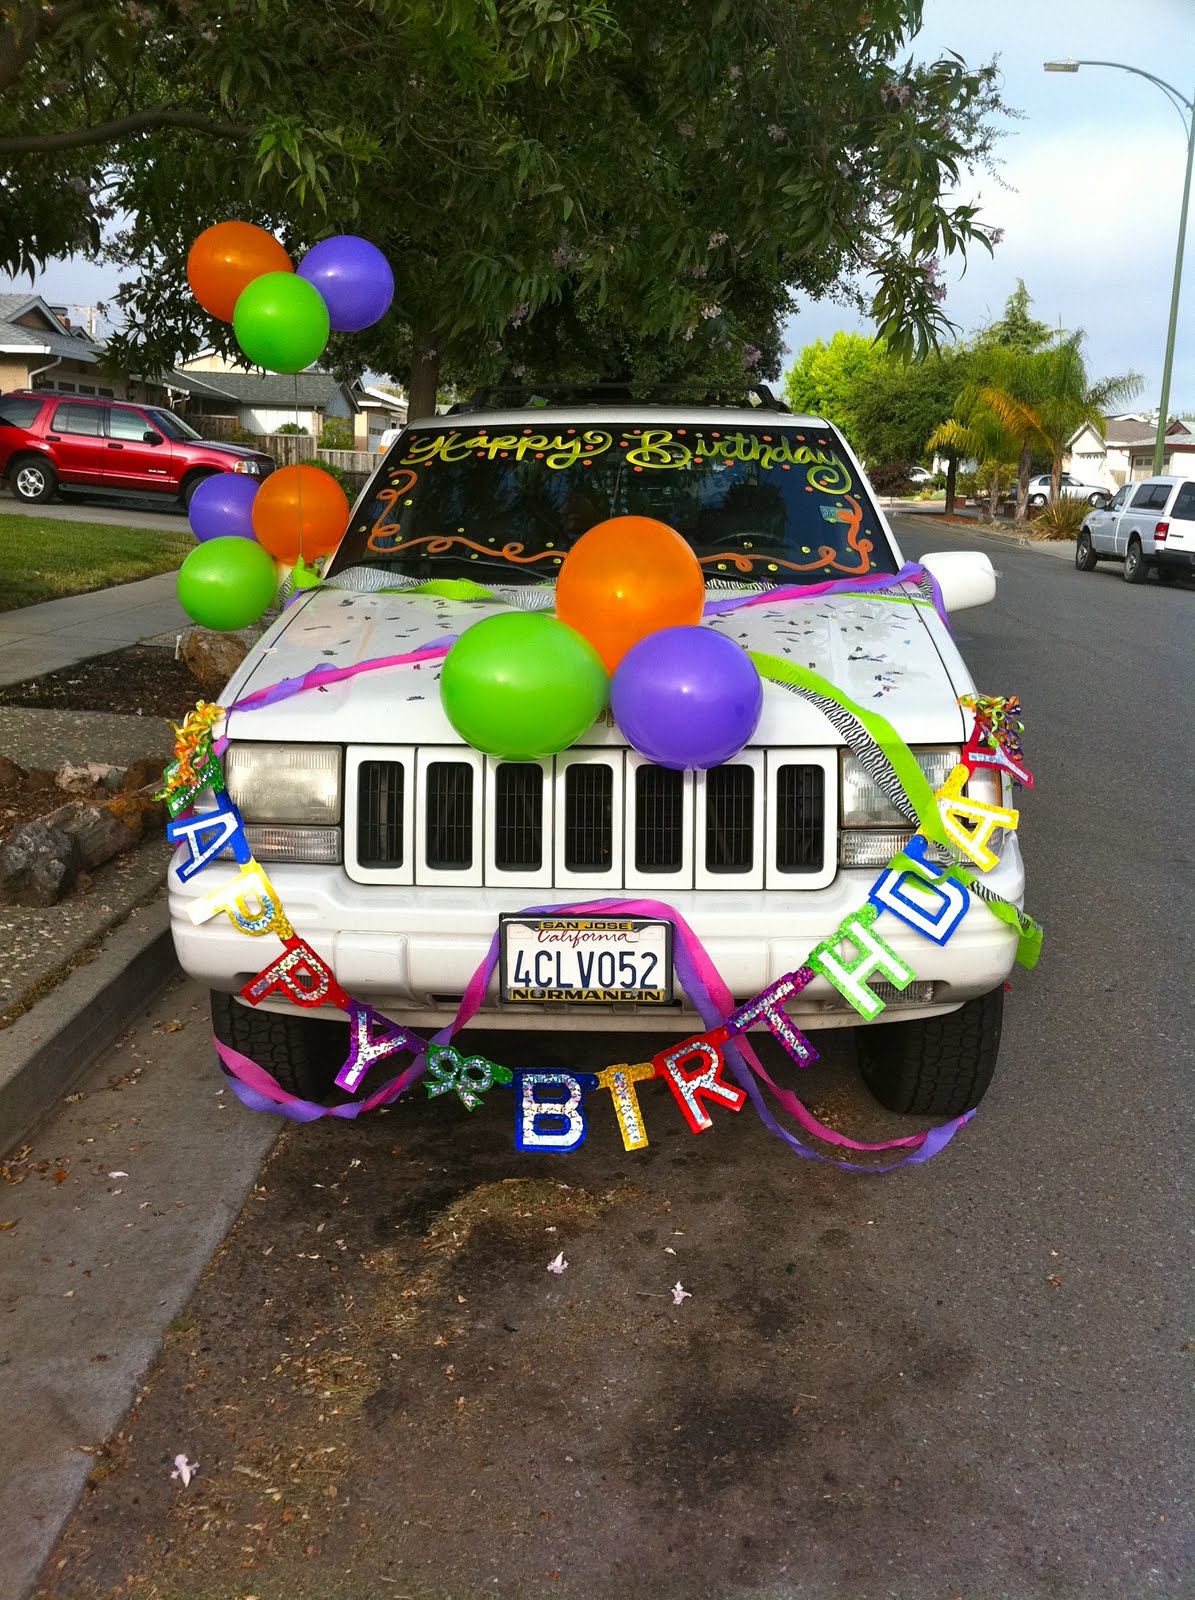 love my cousins for decorating my car last night!